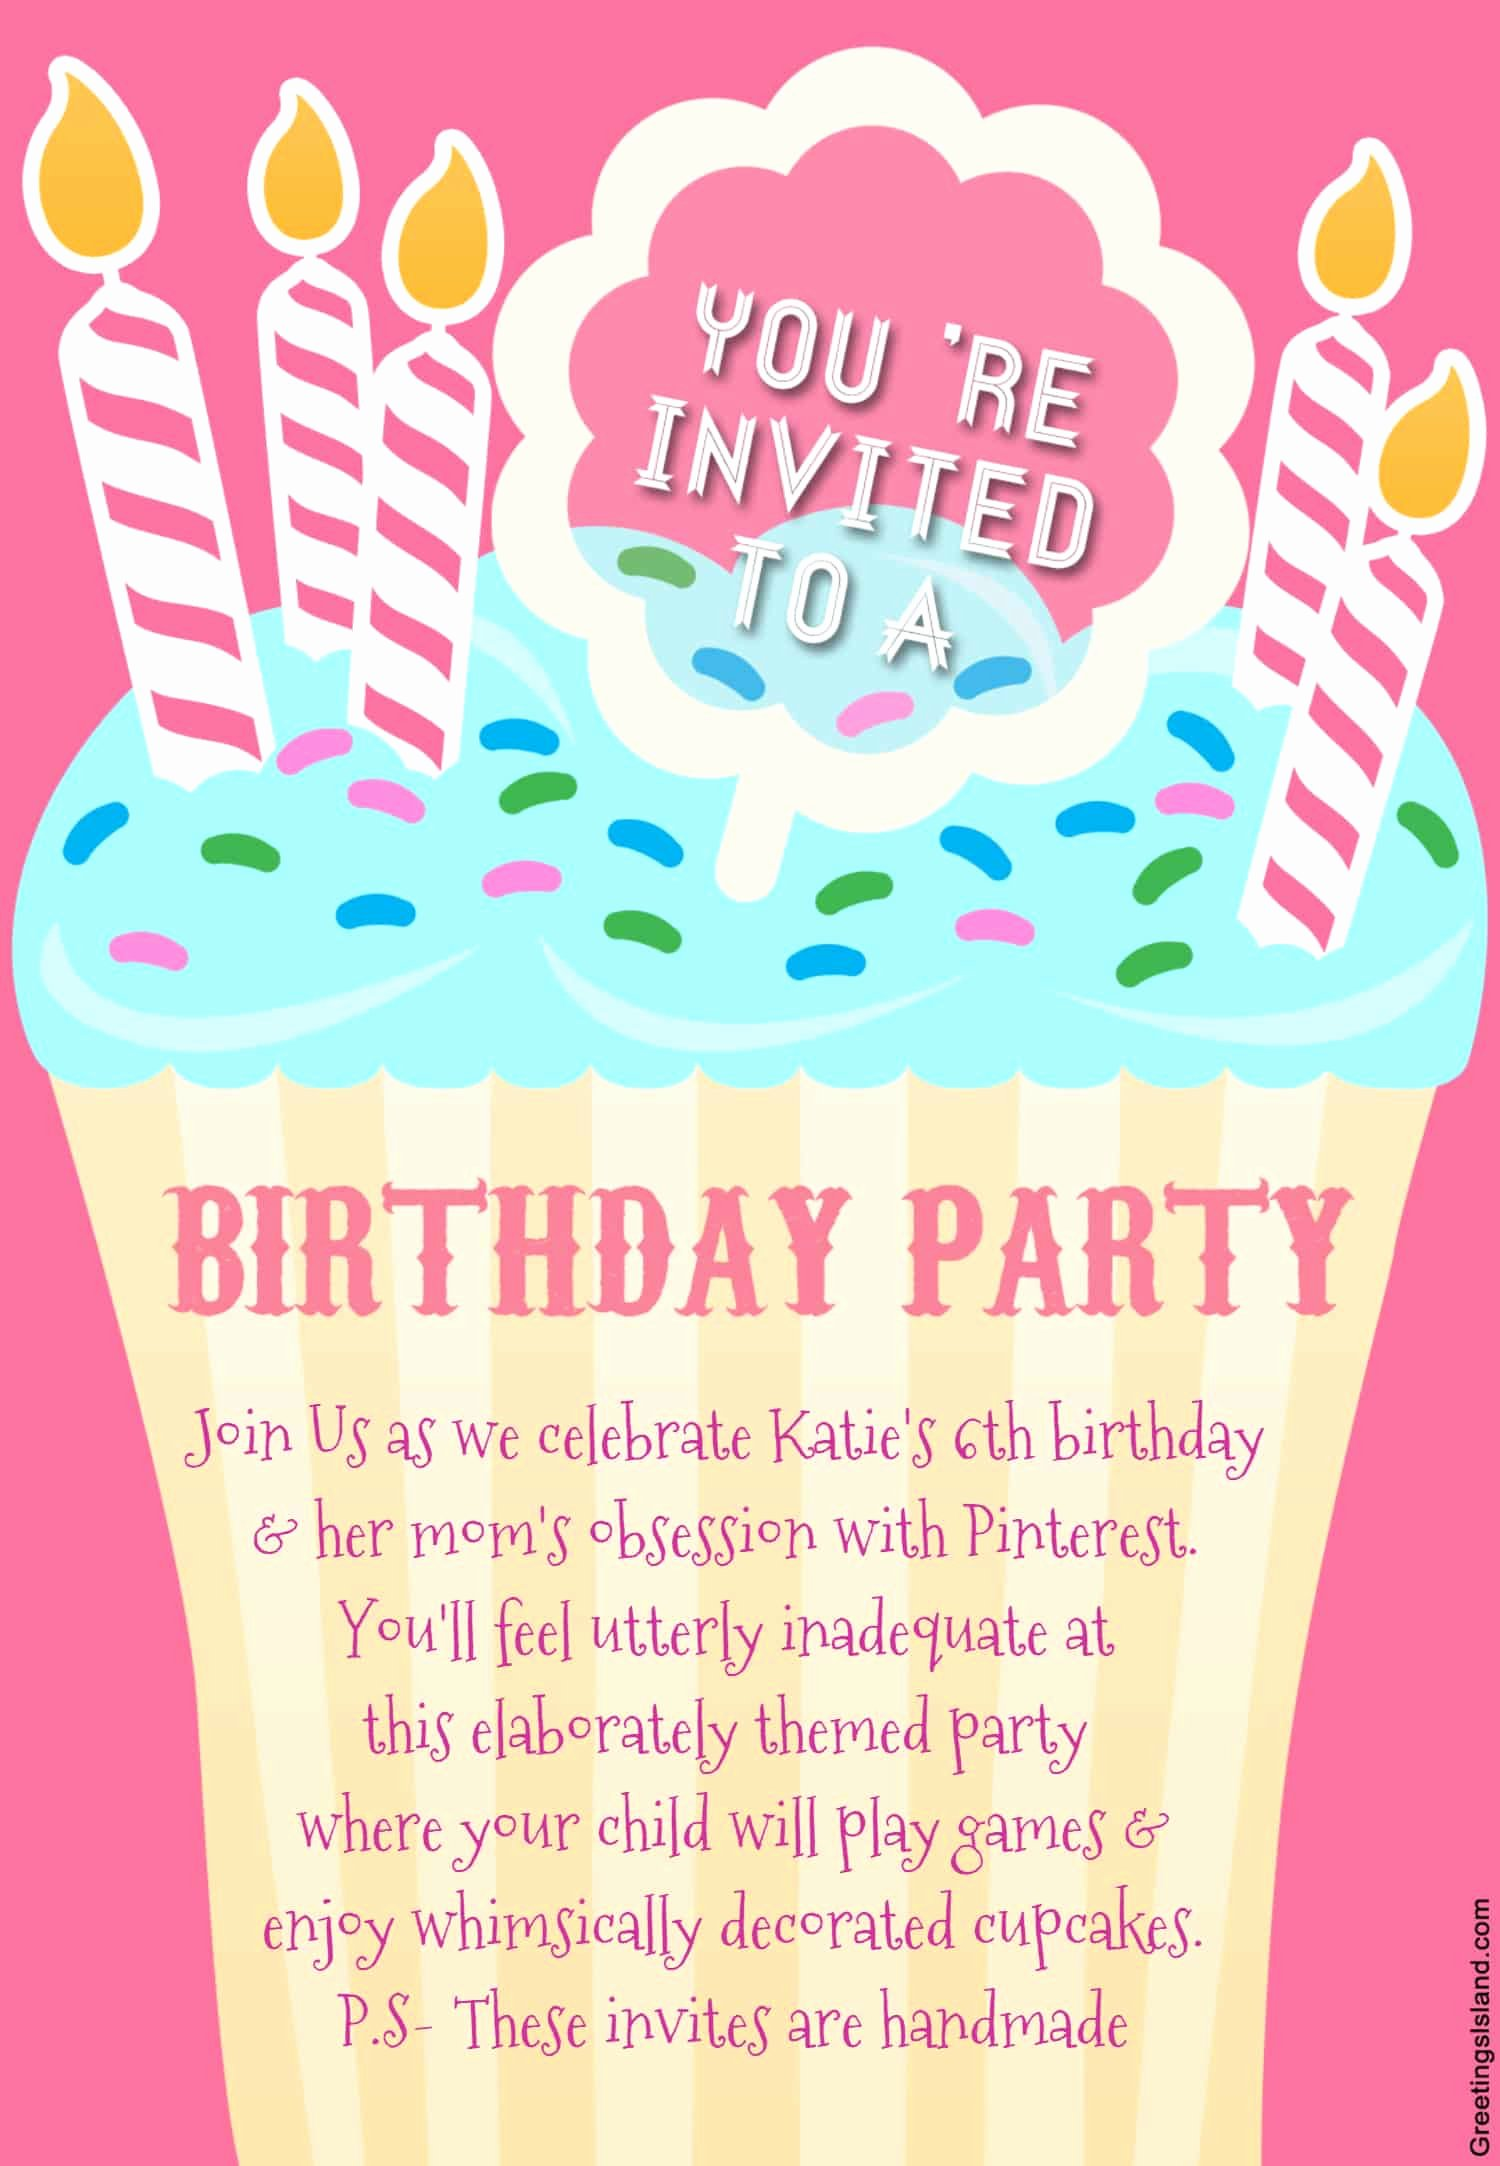 Printable Birthday Party Invitations Awesome Honest Birthday Party Invitations